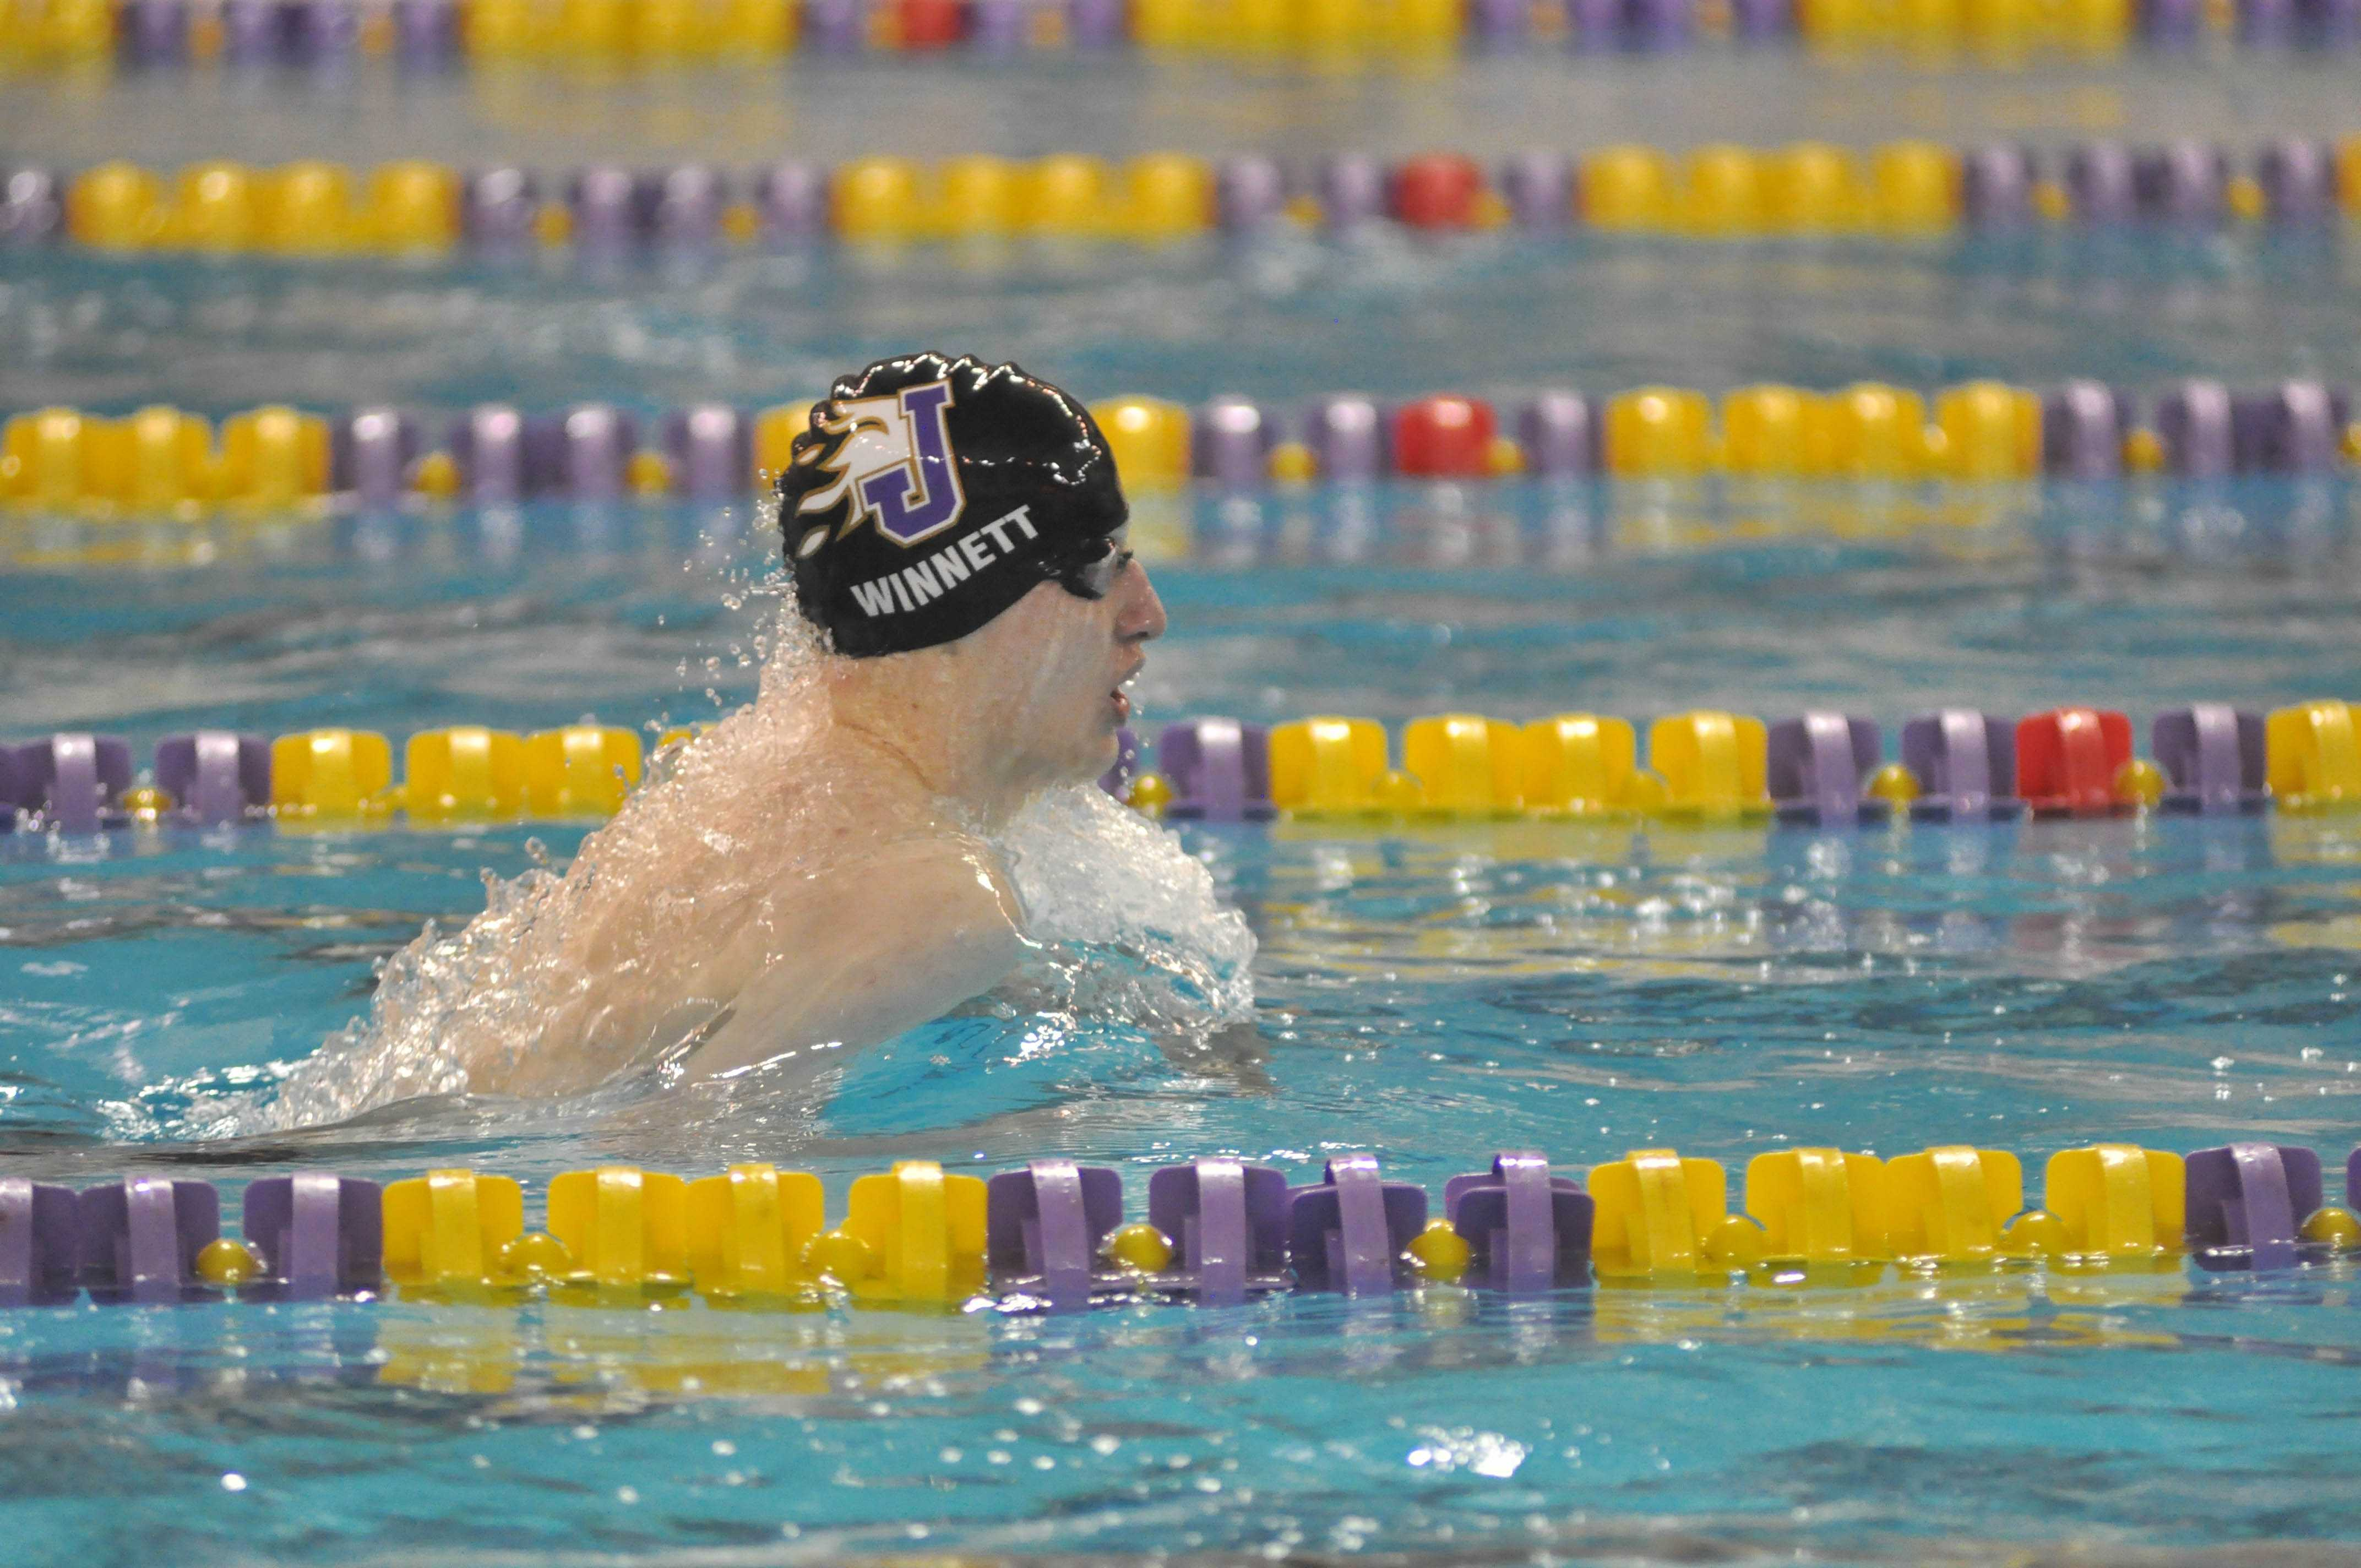 Justin Winnet during a meet against Valley.